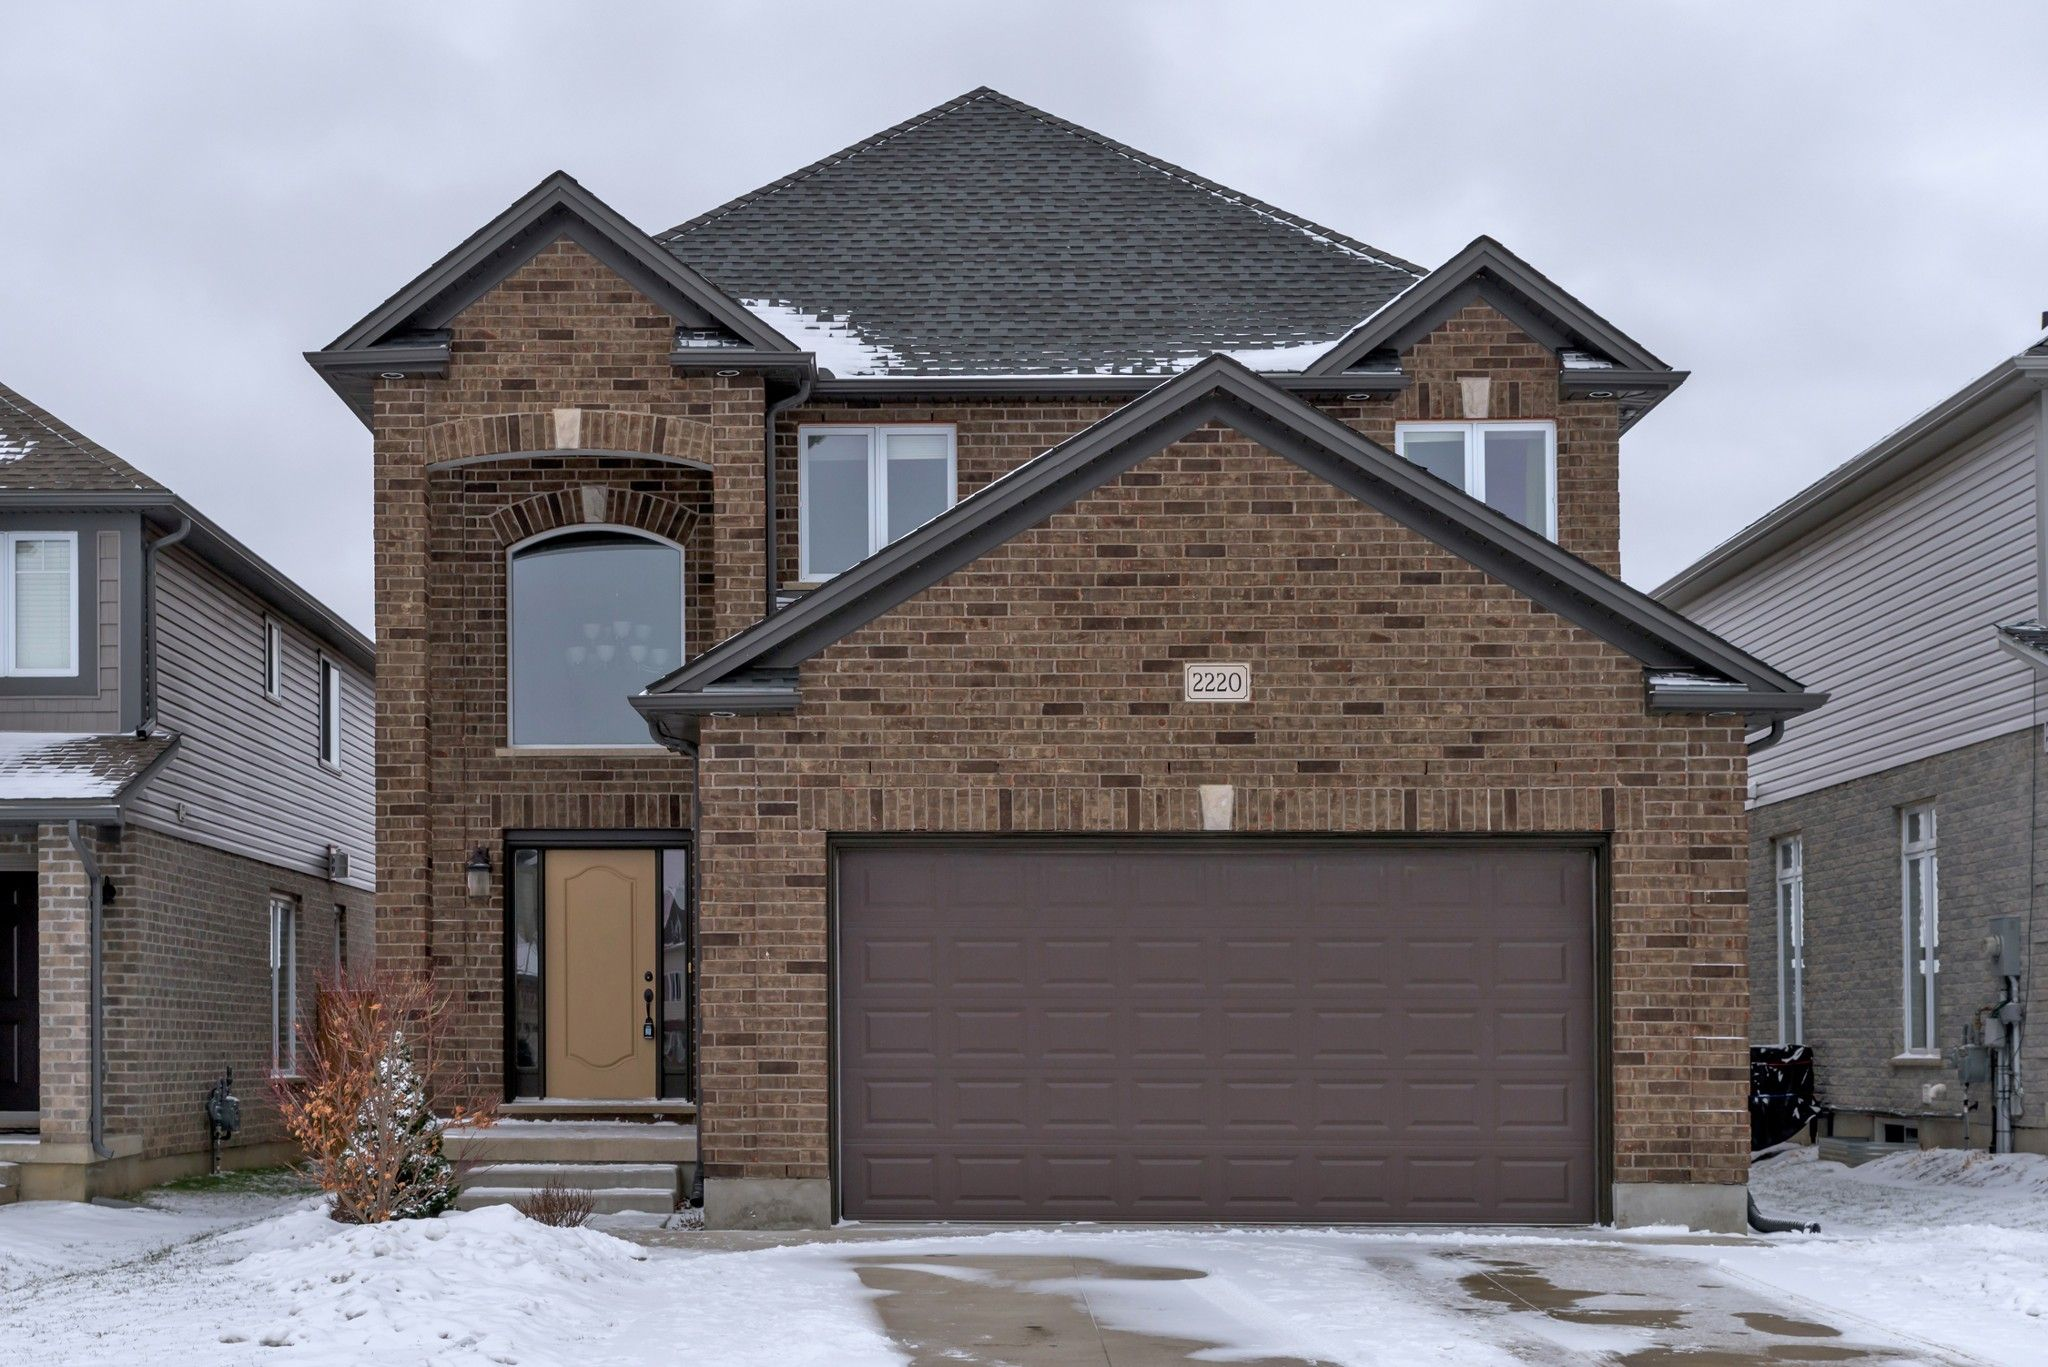 Main Photo: 2220 CARDINAL Court in London: Property for sale : MLS®# 243355